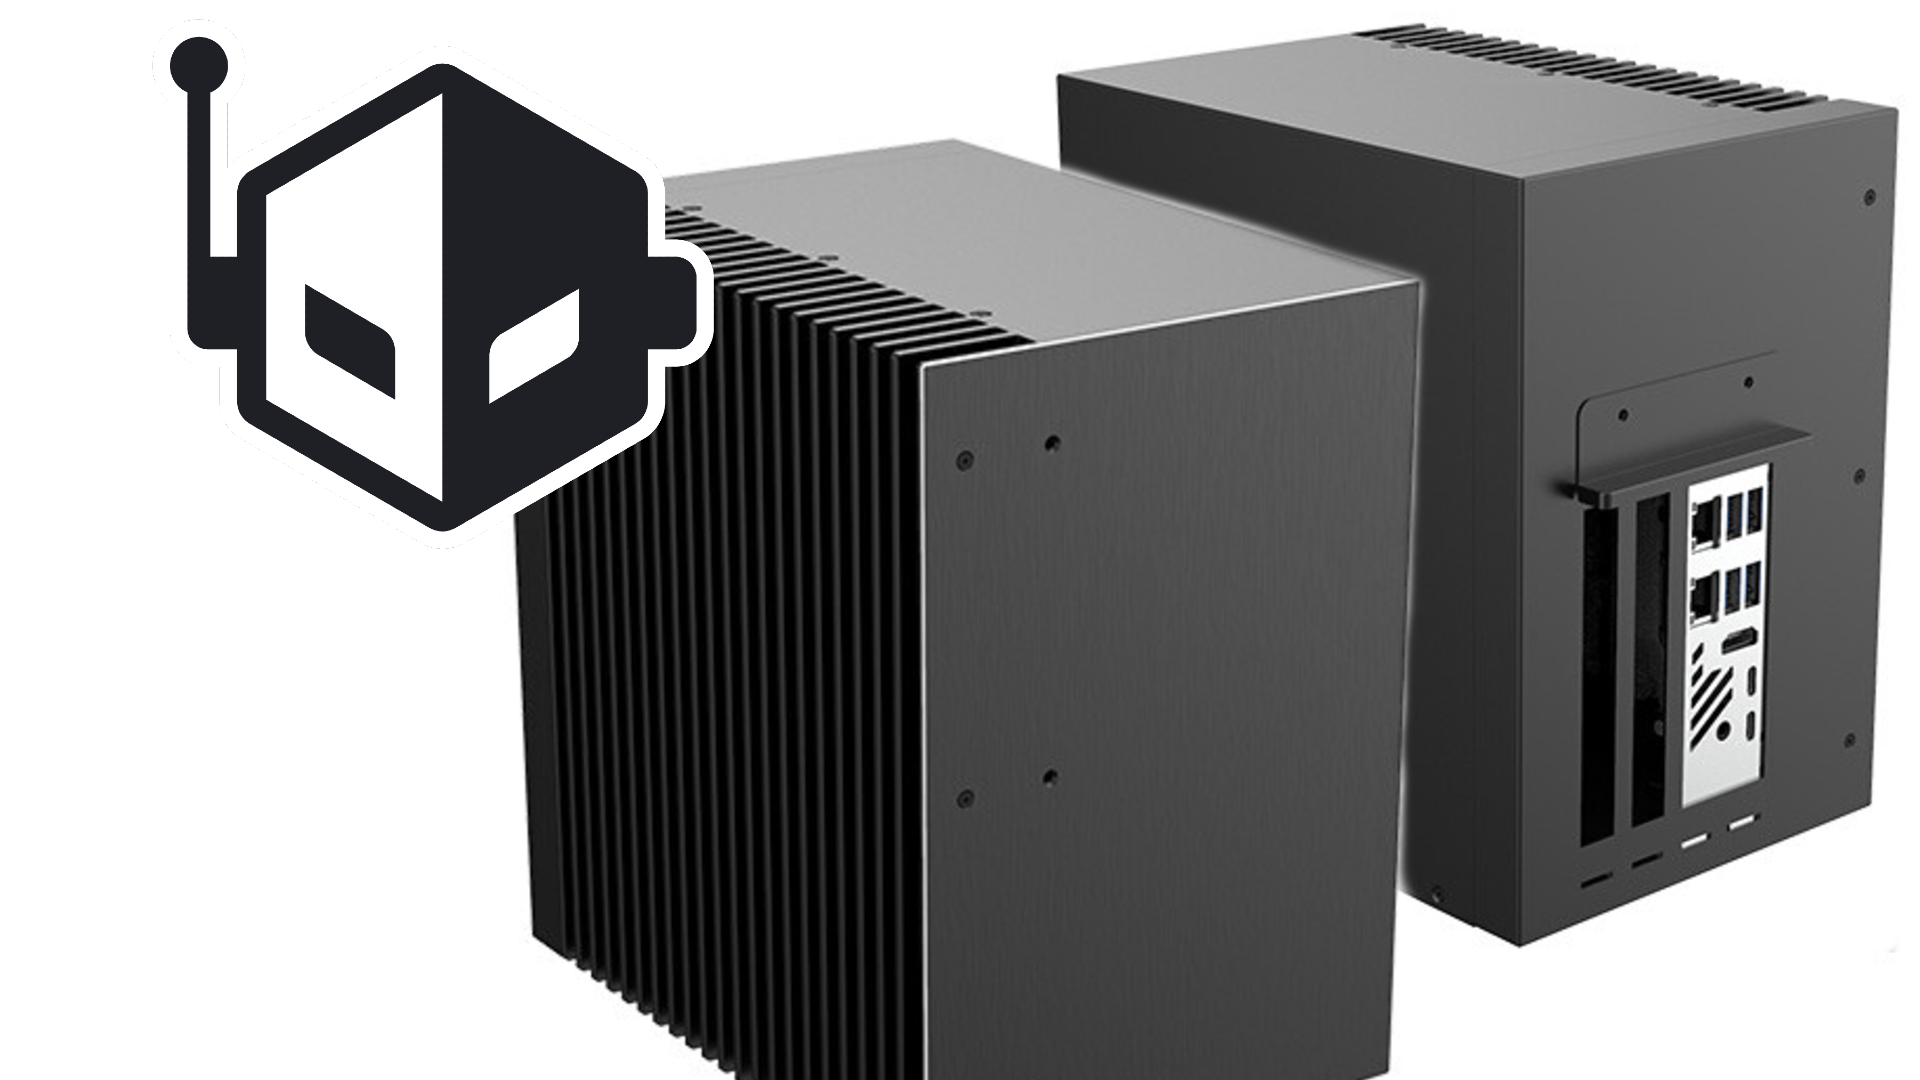 Akasa Announces the Turing QLX, A Fanless case for the Intel NUC 9 Pro